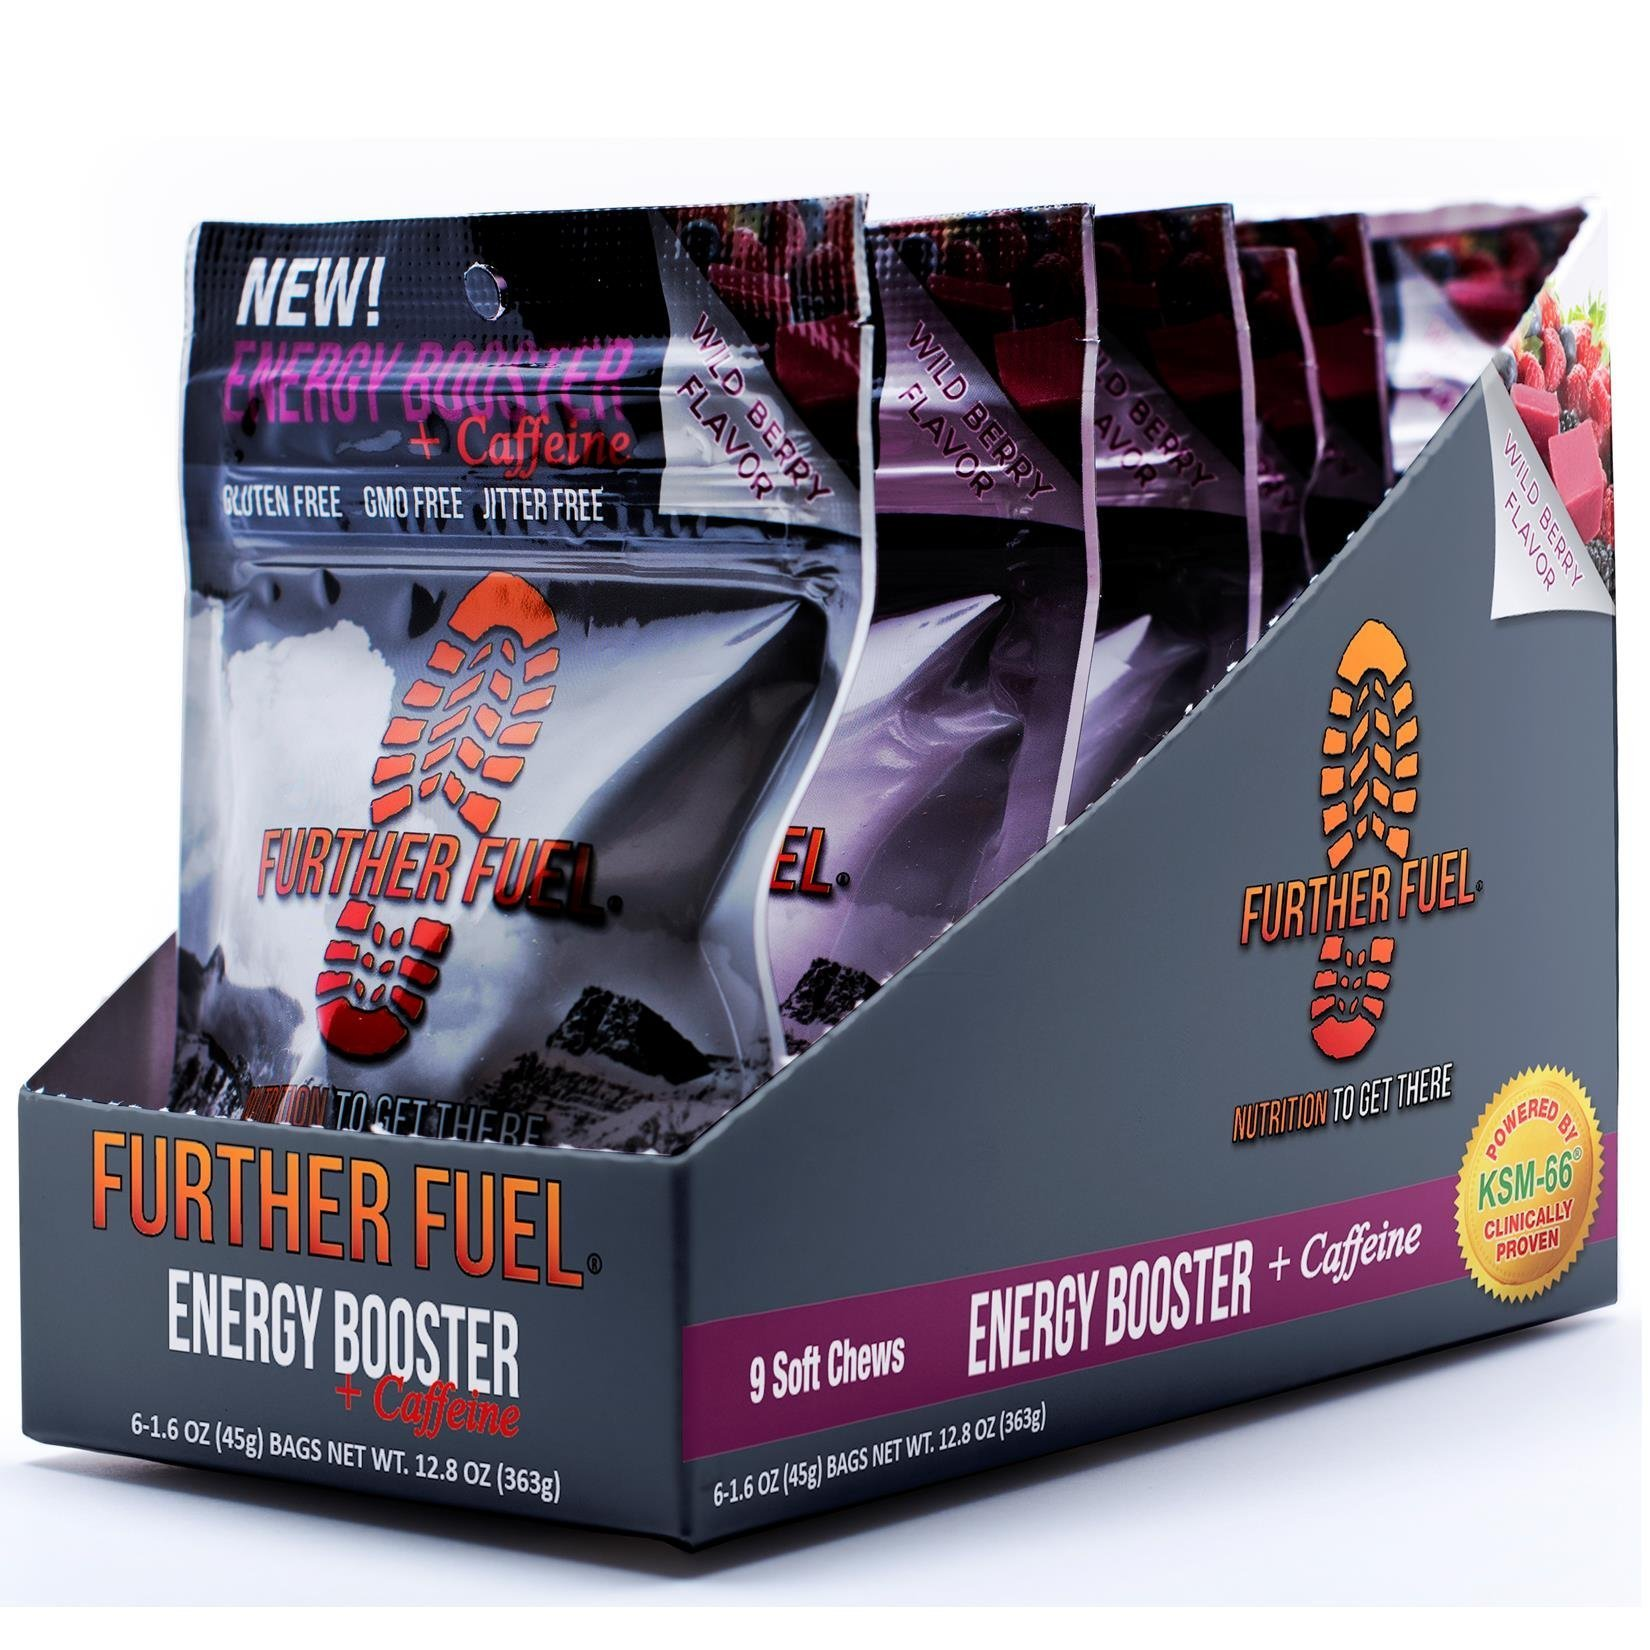 FURTHER FUEL - Energy Booster + Caffeine Soft Chews (6-pack) powered by KSM-66 Ashwagandha, B12, L-Tyrosine and natural caffeine- no jitters, no crash, low sugar